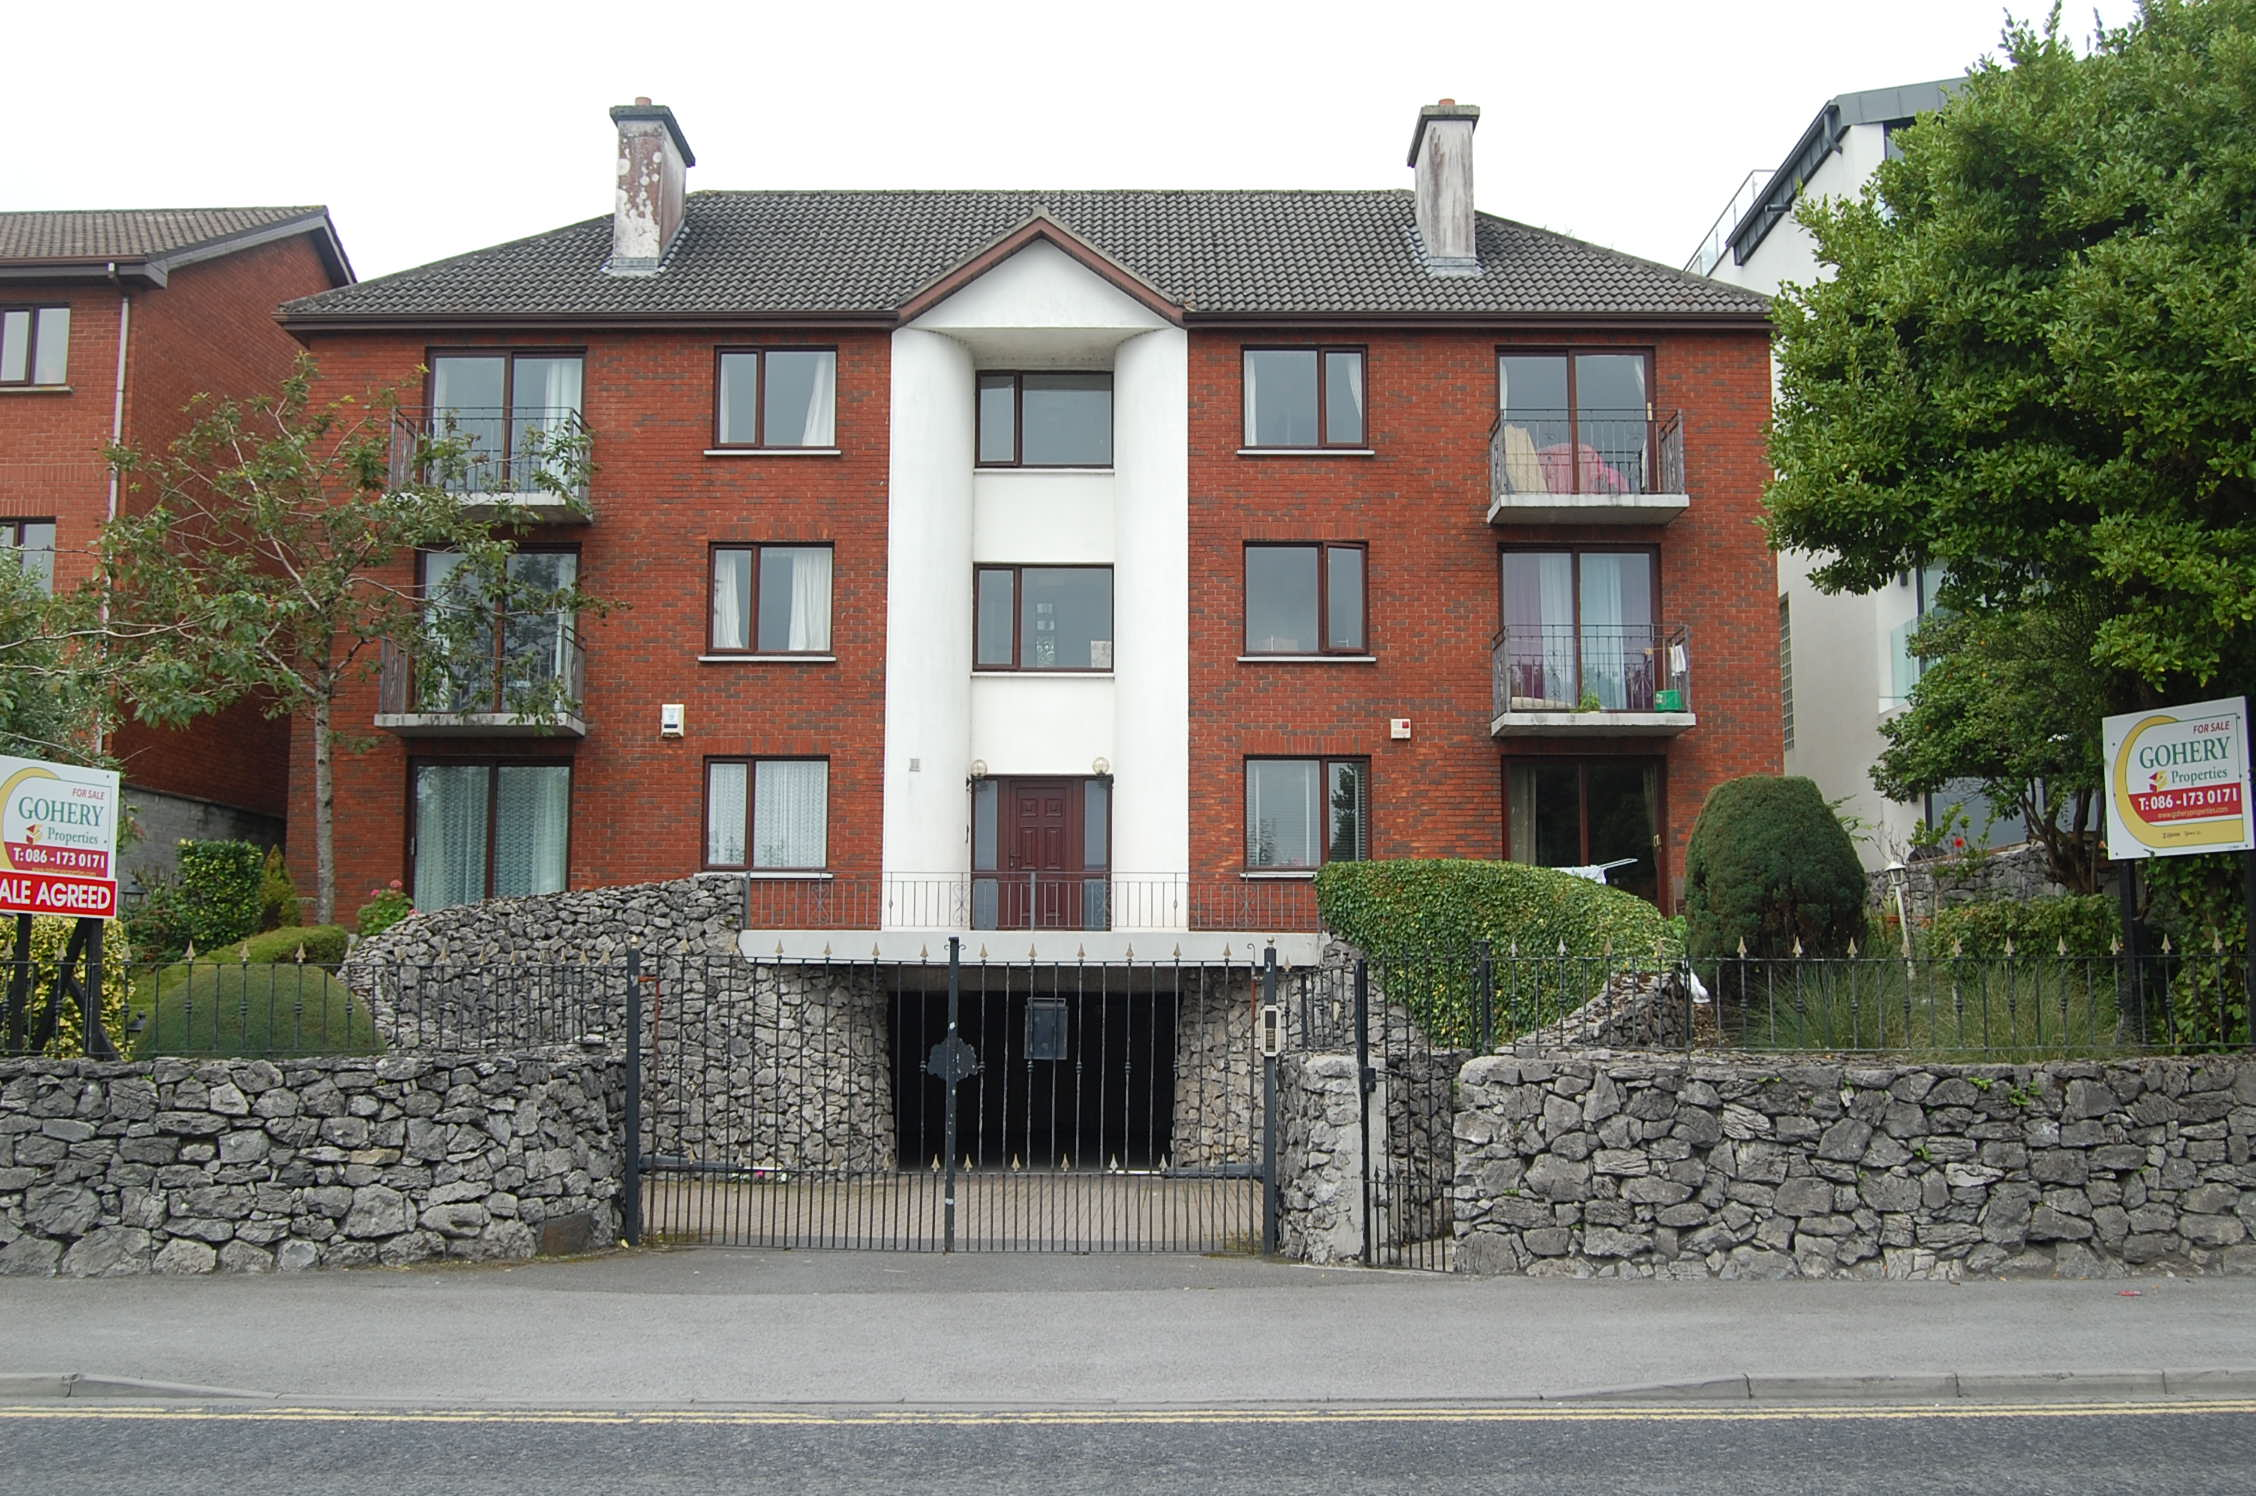 Apartment 5 Lough Atalia Road, Galway City, Co. Galway